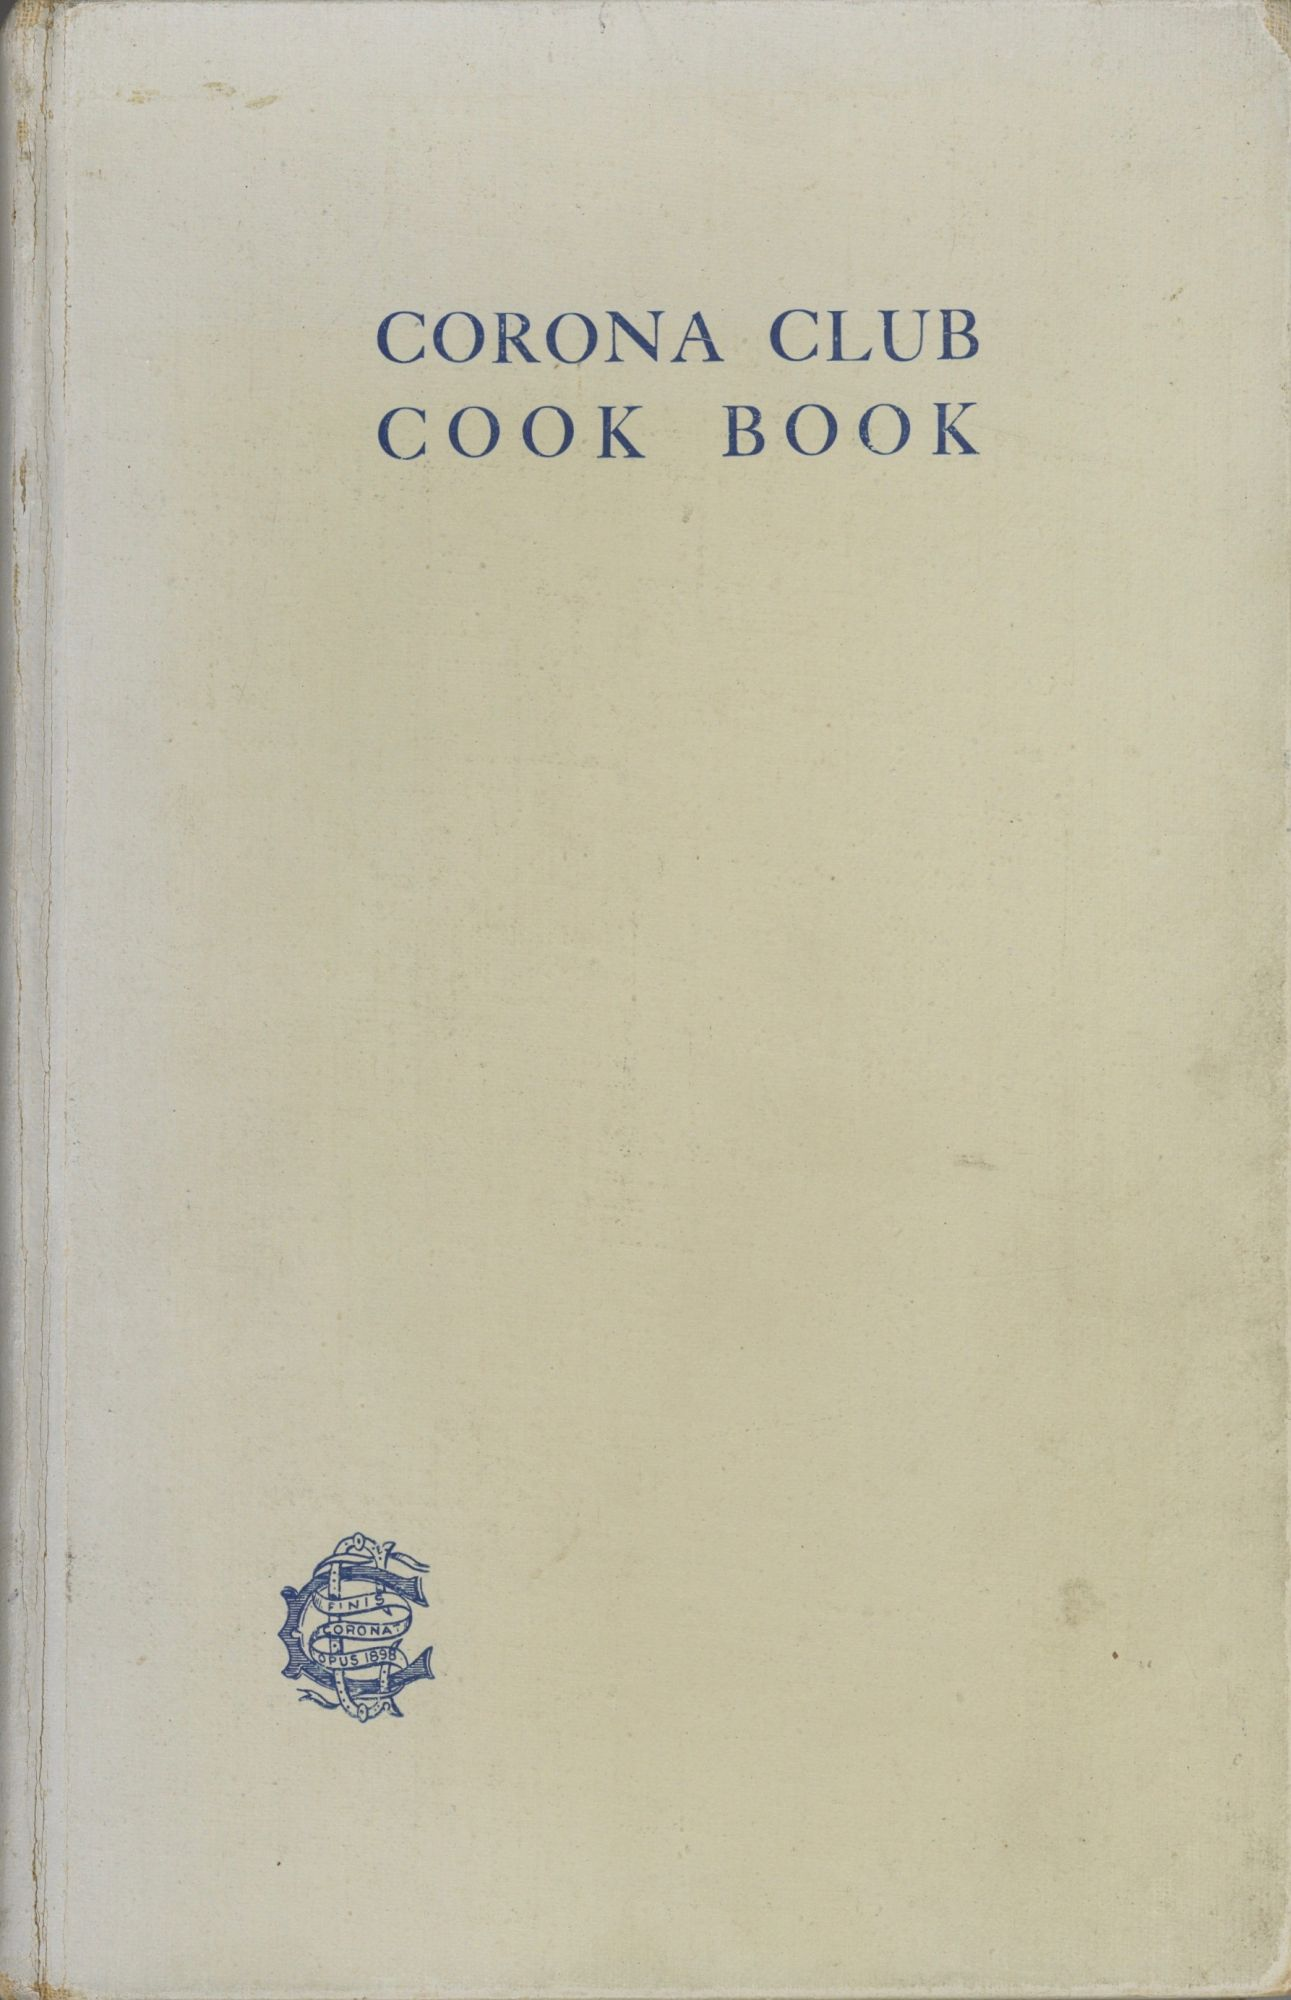 Corona Club Cook Book. [Compiled by members of the Corona Club.]. Corona Club, Household Economics Section, San Francisco.